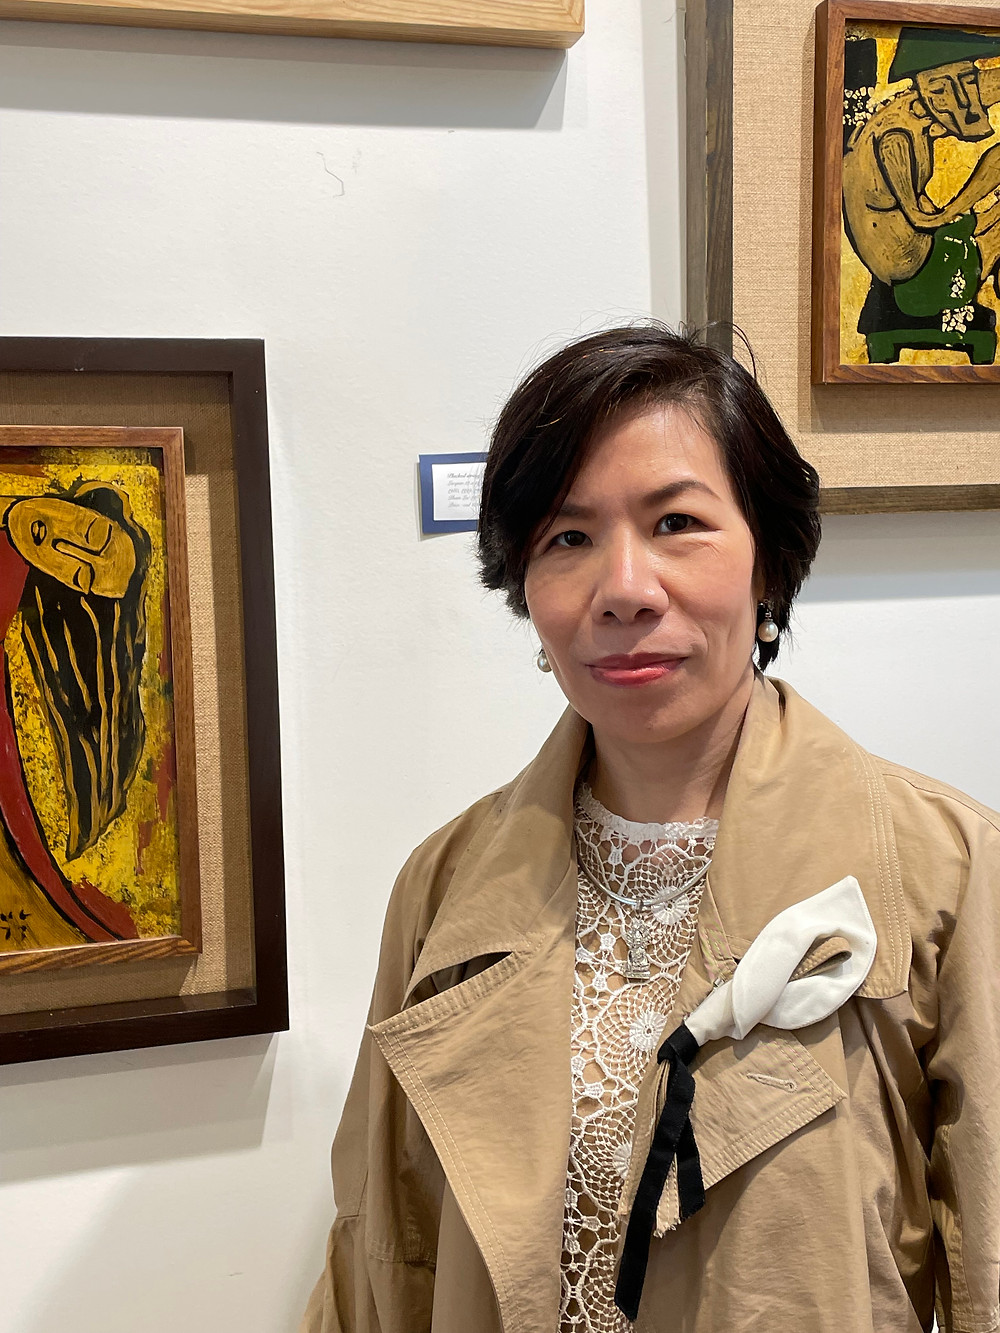 Julia Thieu stands in front of her art pieces. She wears a beige coat with a floral broach.